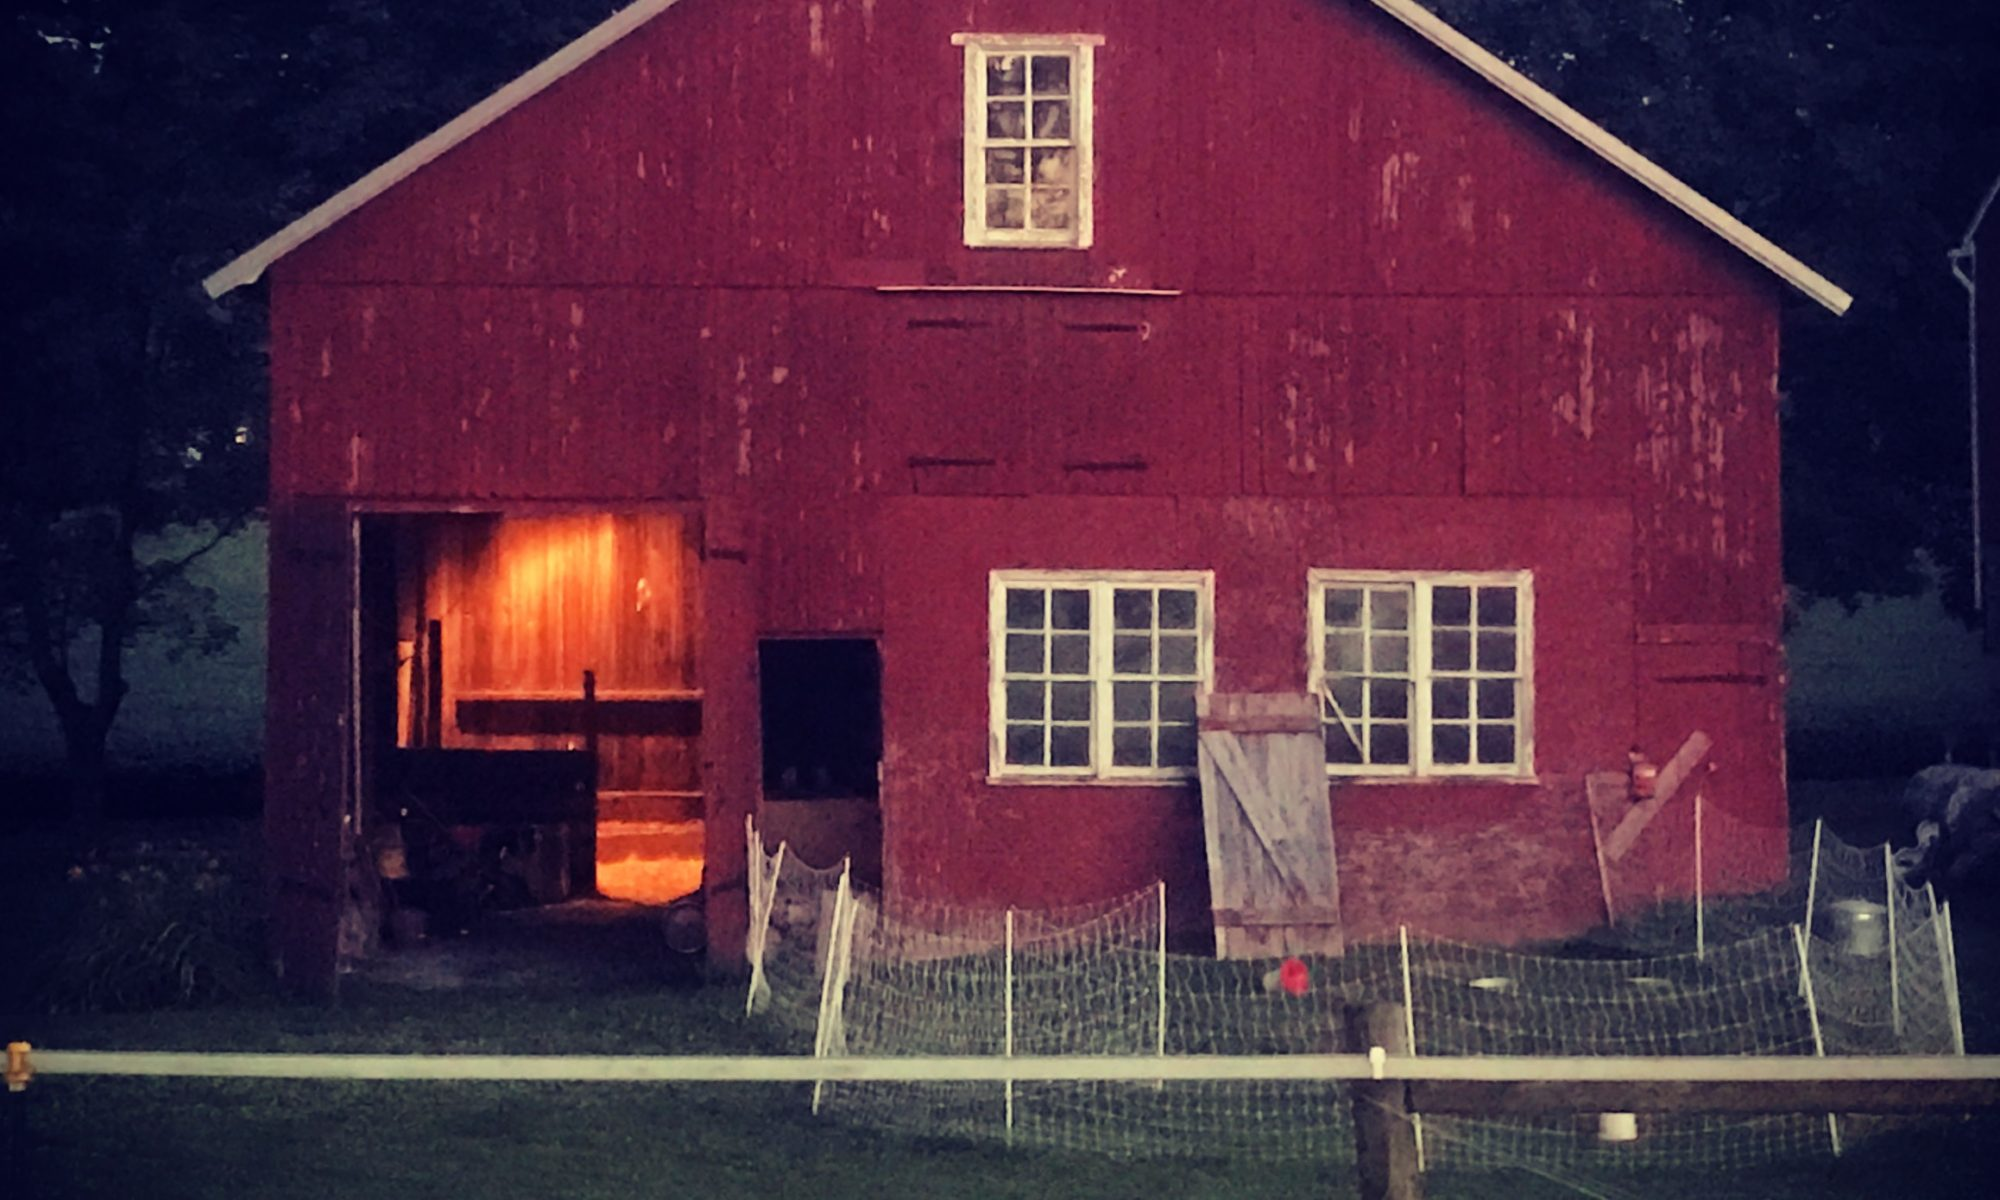 Old PA barn with lights on inside